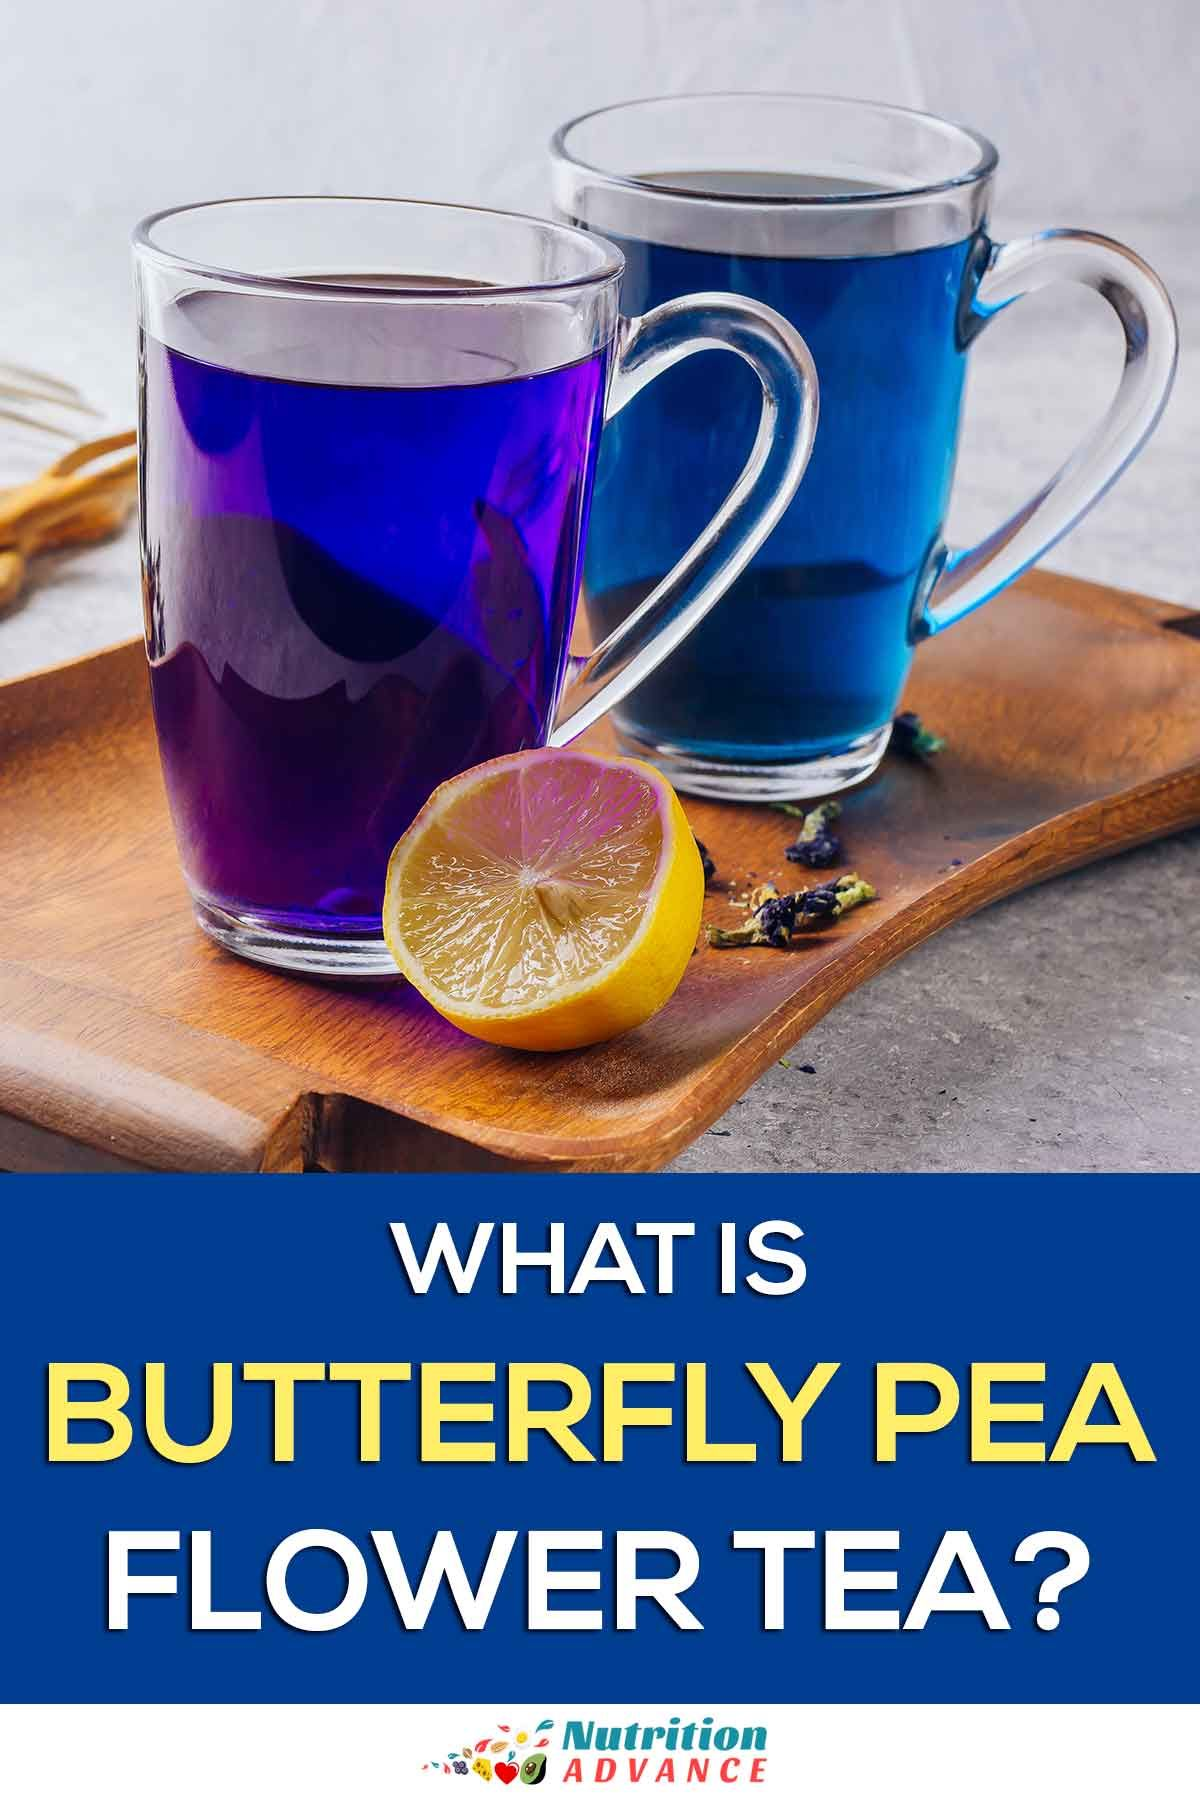 What Is Butterfly Pea Flower Tea? (Blue Tea) Butterfly